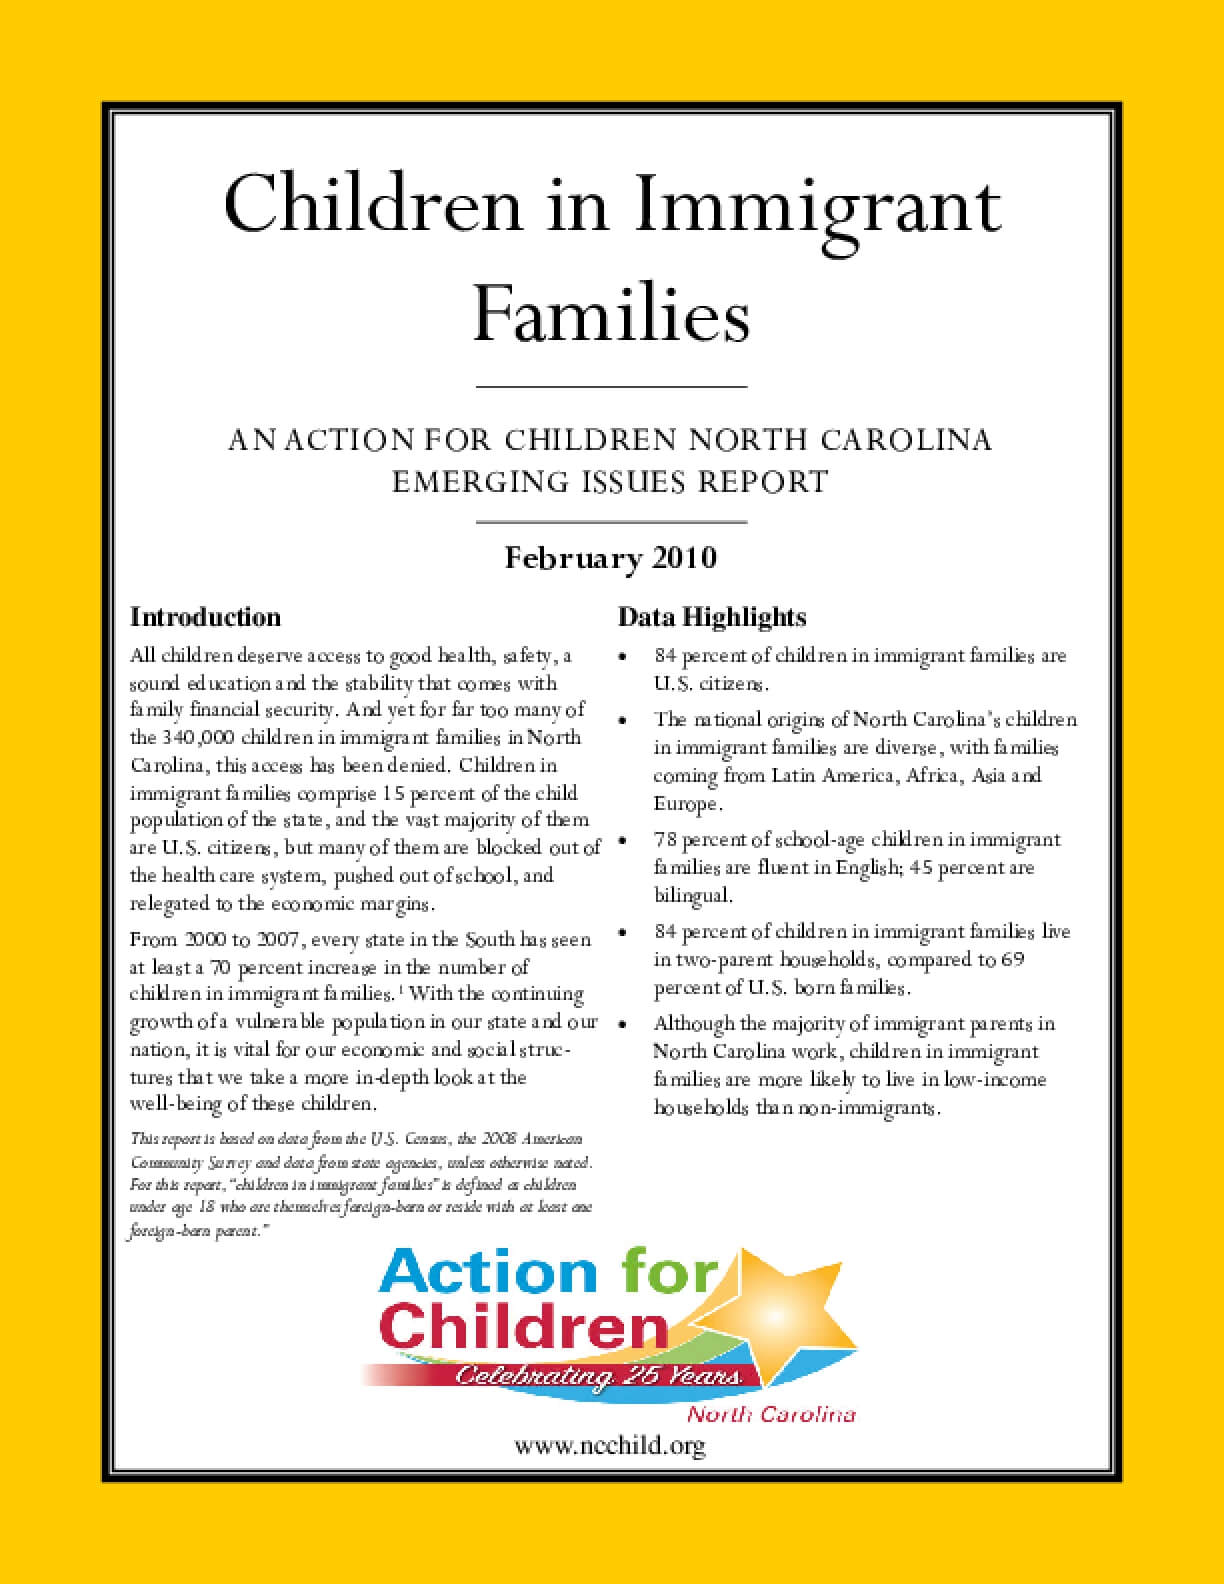 Children in Immigrant Families